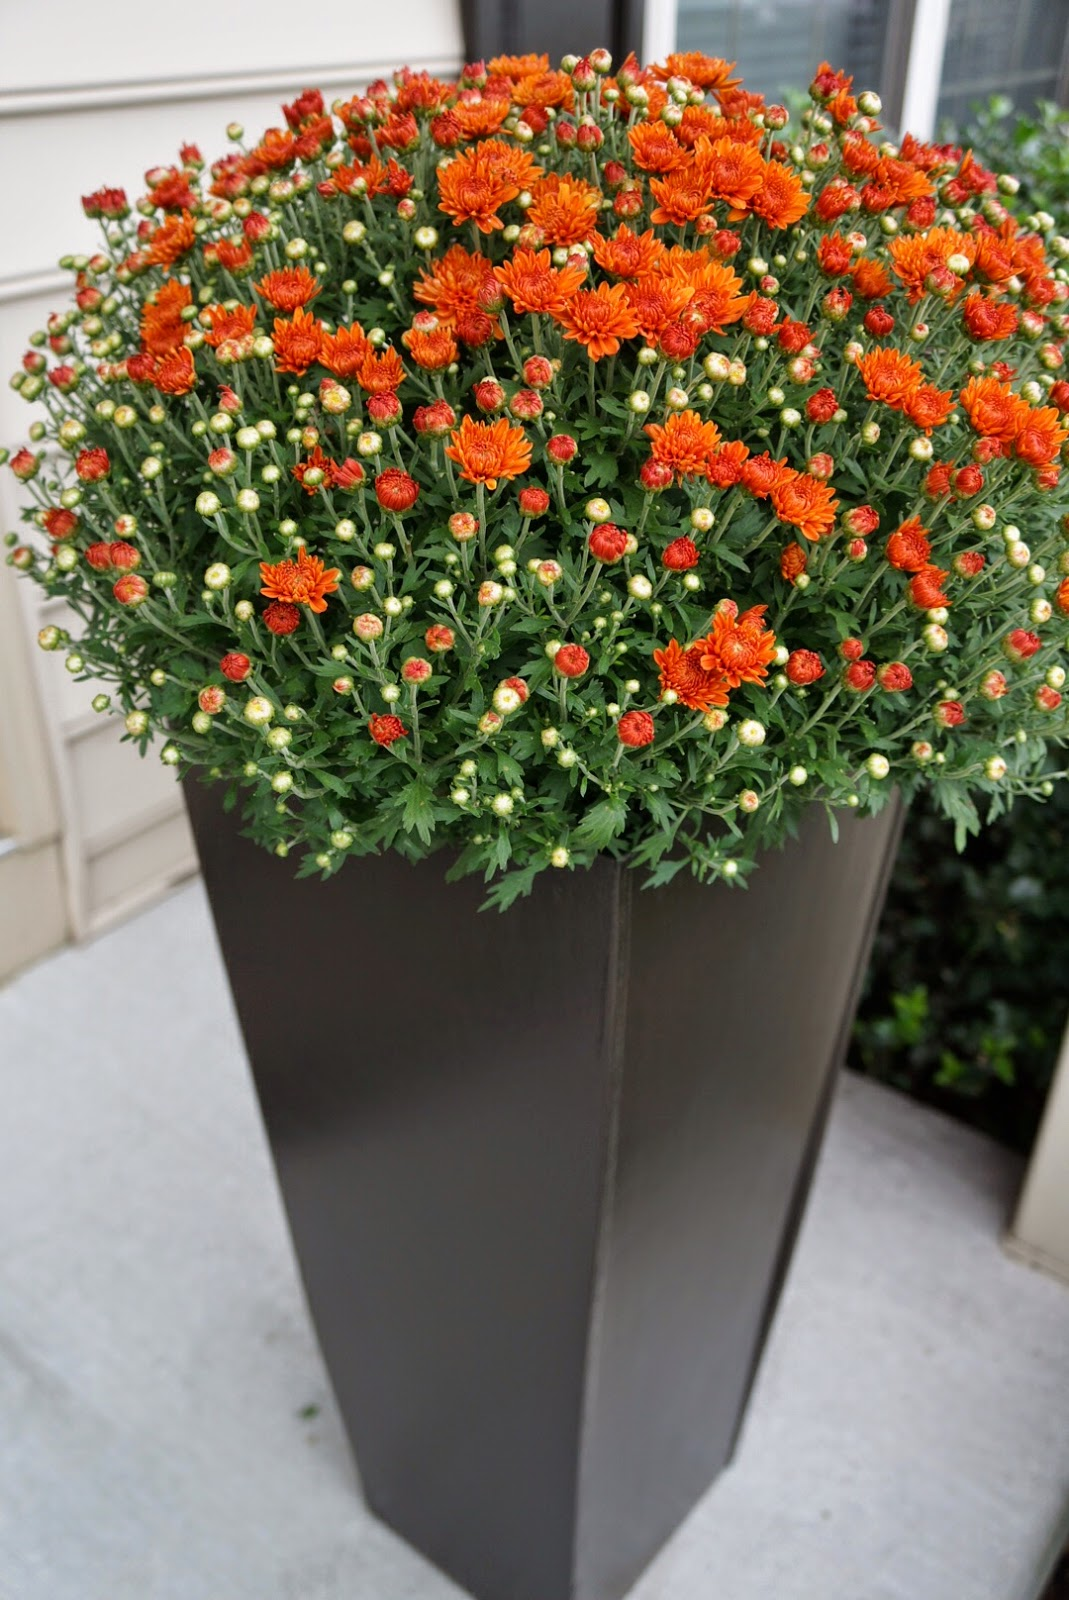 Big Flower Planters Decor Tall Garden Planters Tall Planters Large